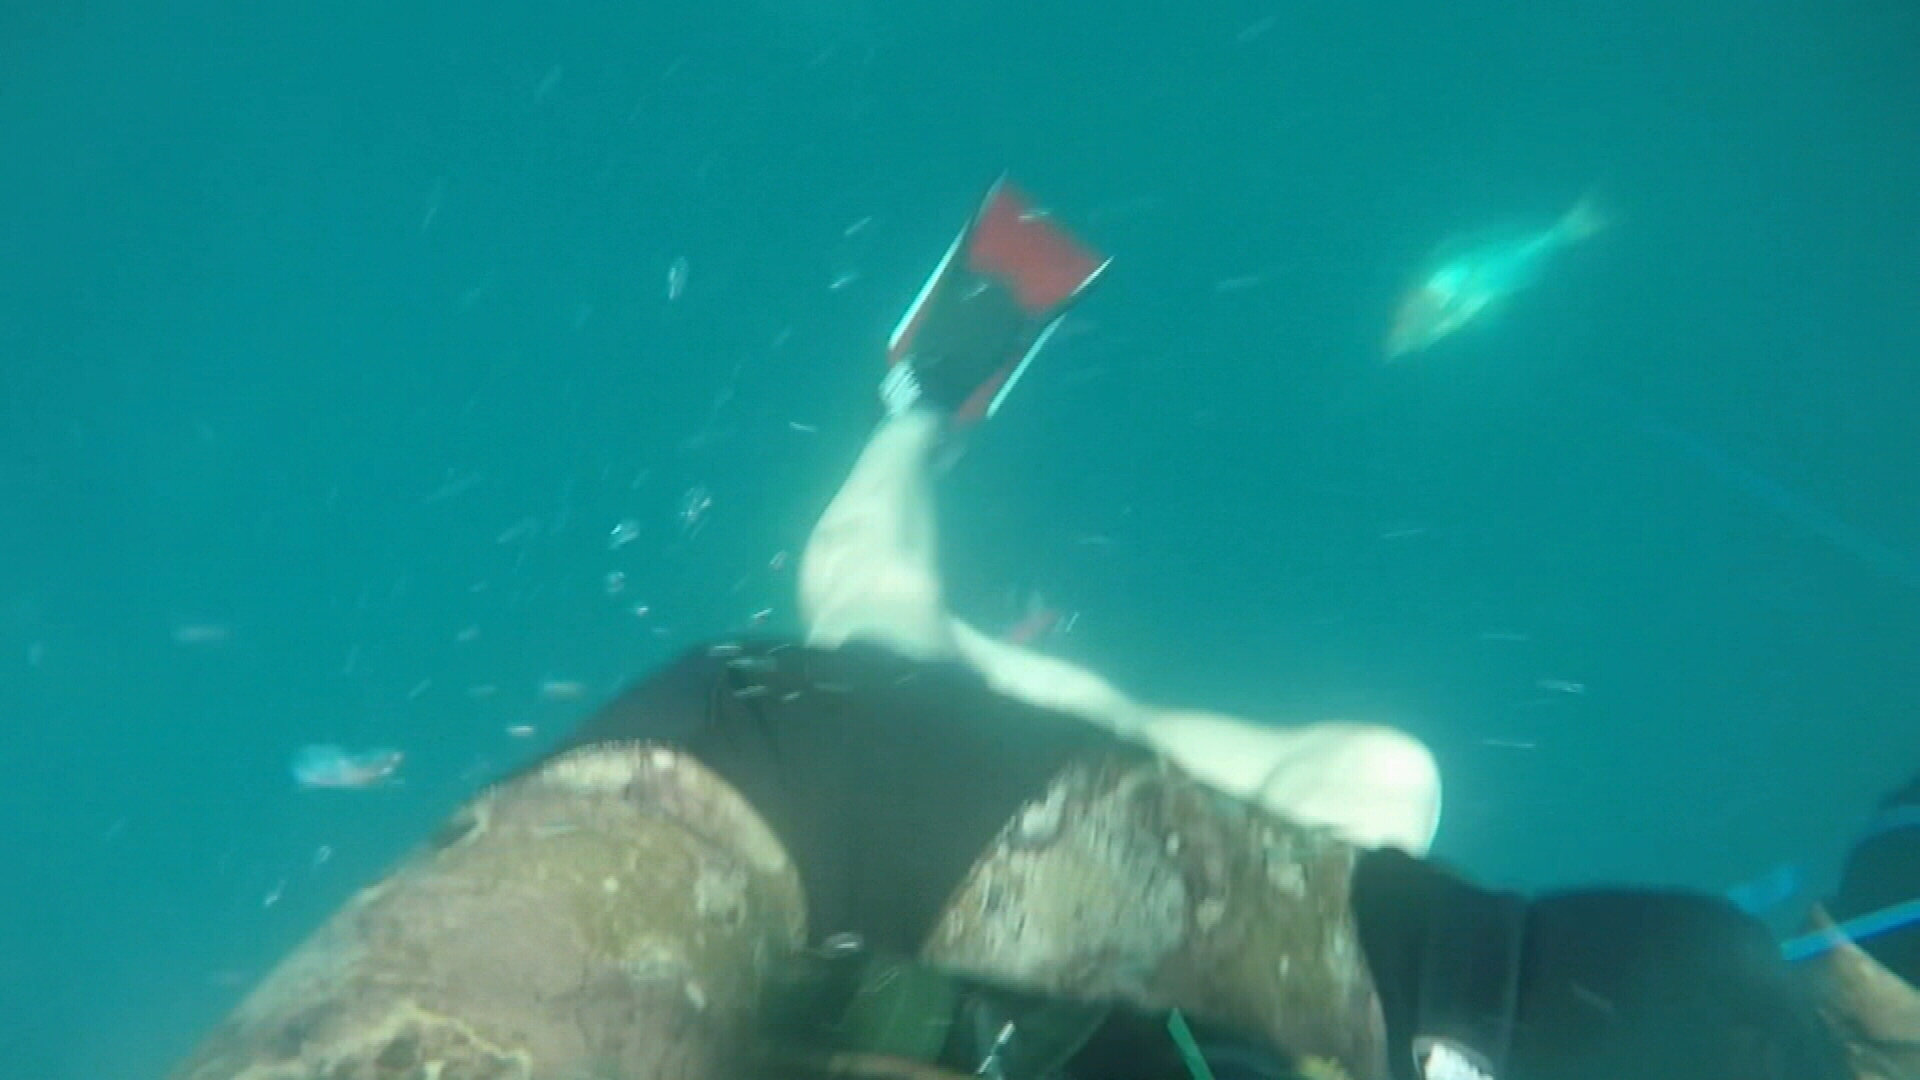 'I didn't see it': Student's terrifying shark encounter